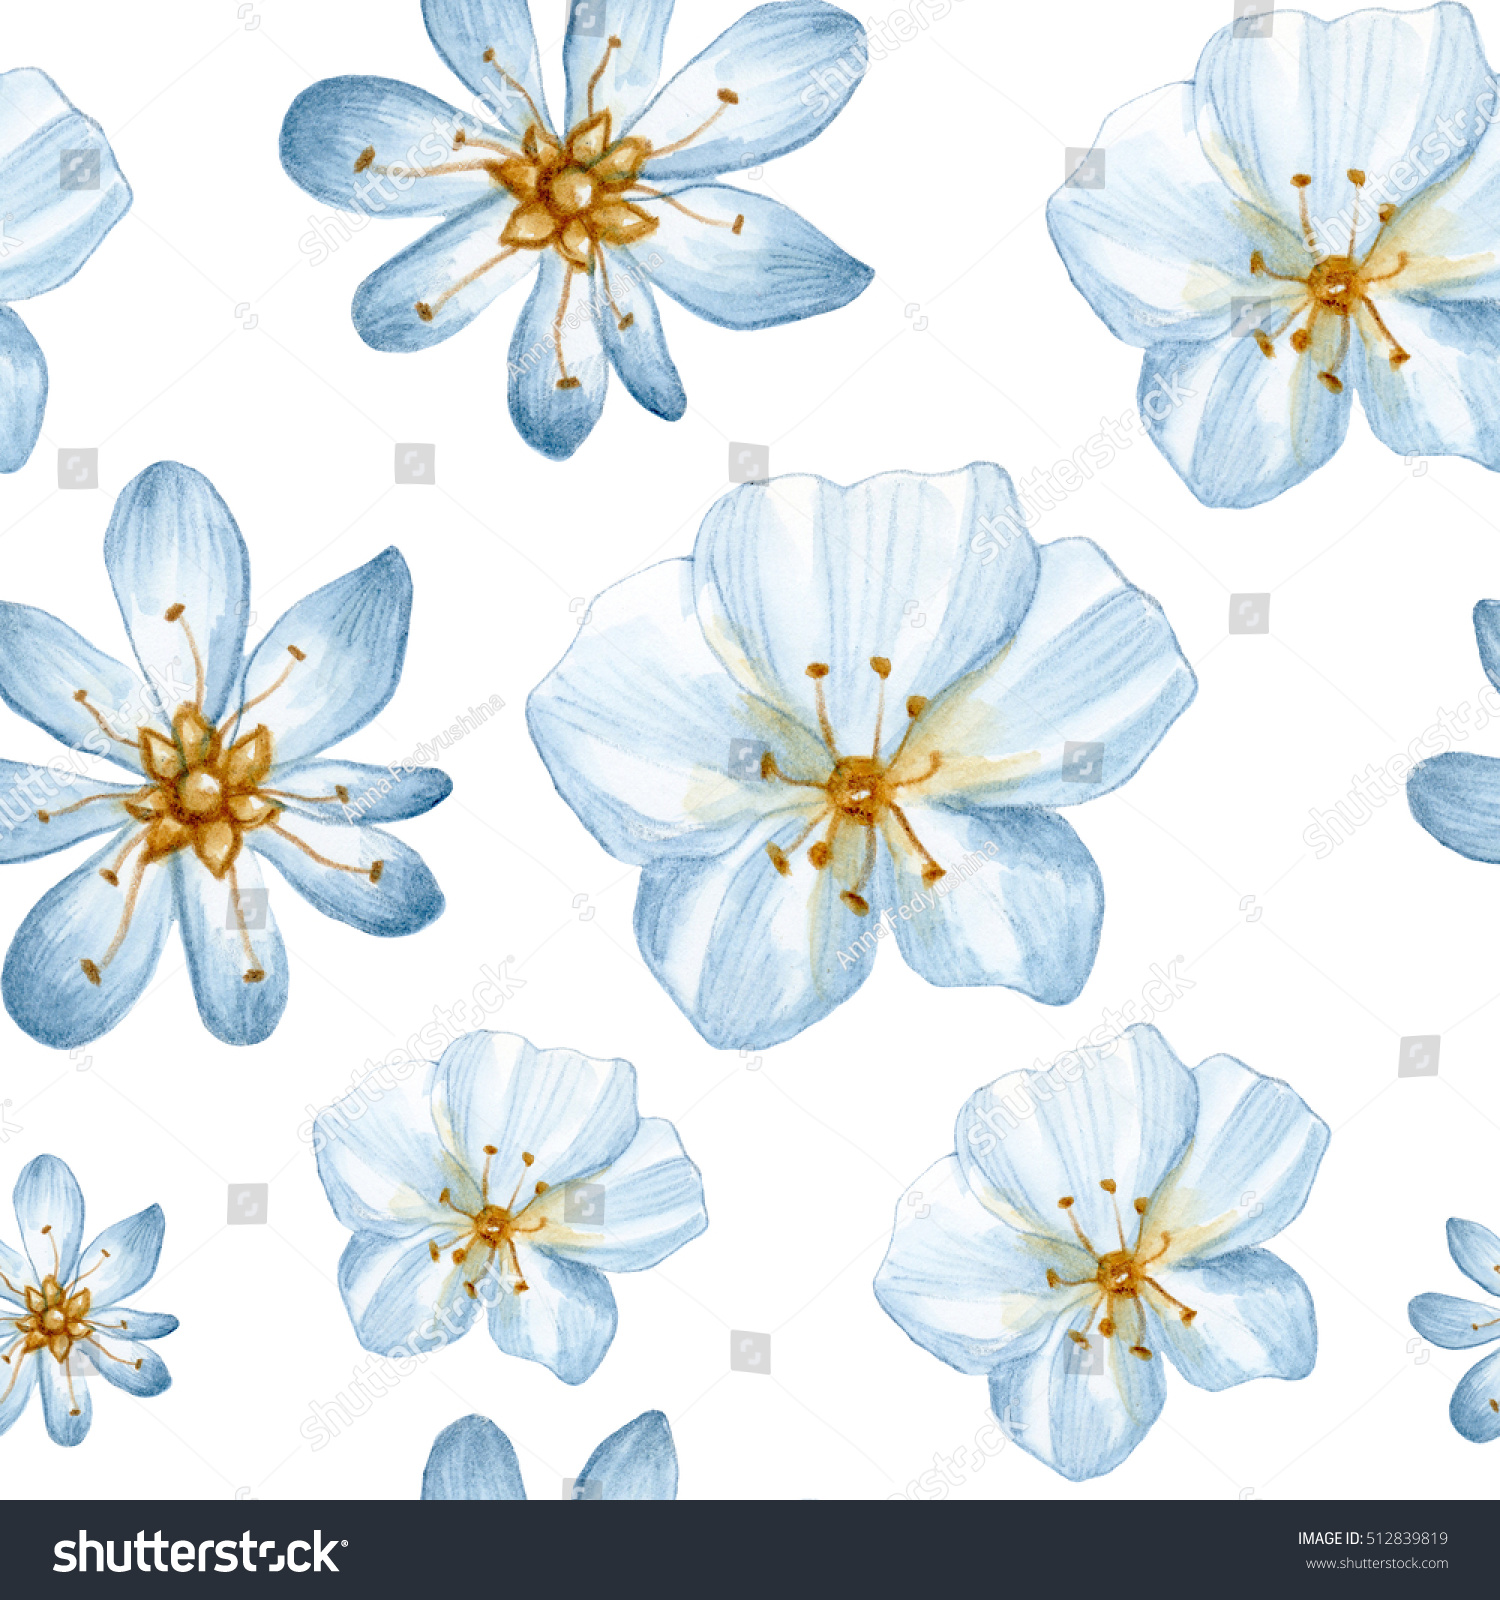 Watercolor Seamless Floral Pattern With Light Blue Flowers Perfect For Textile Design Wallpaper